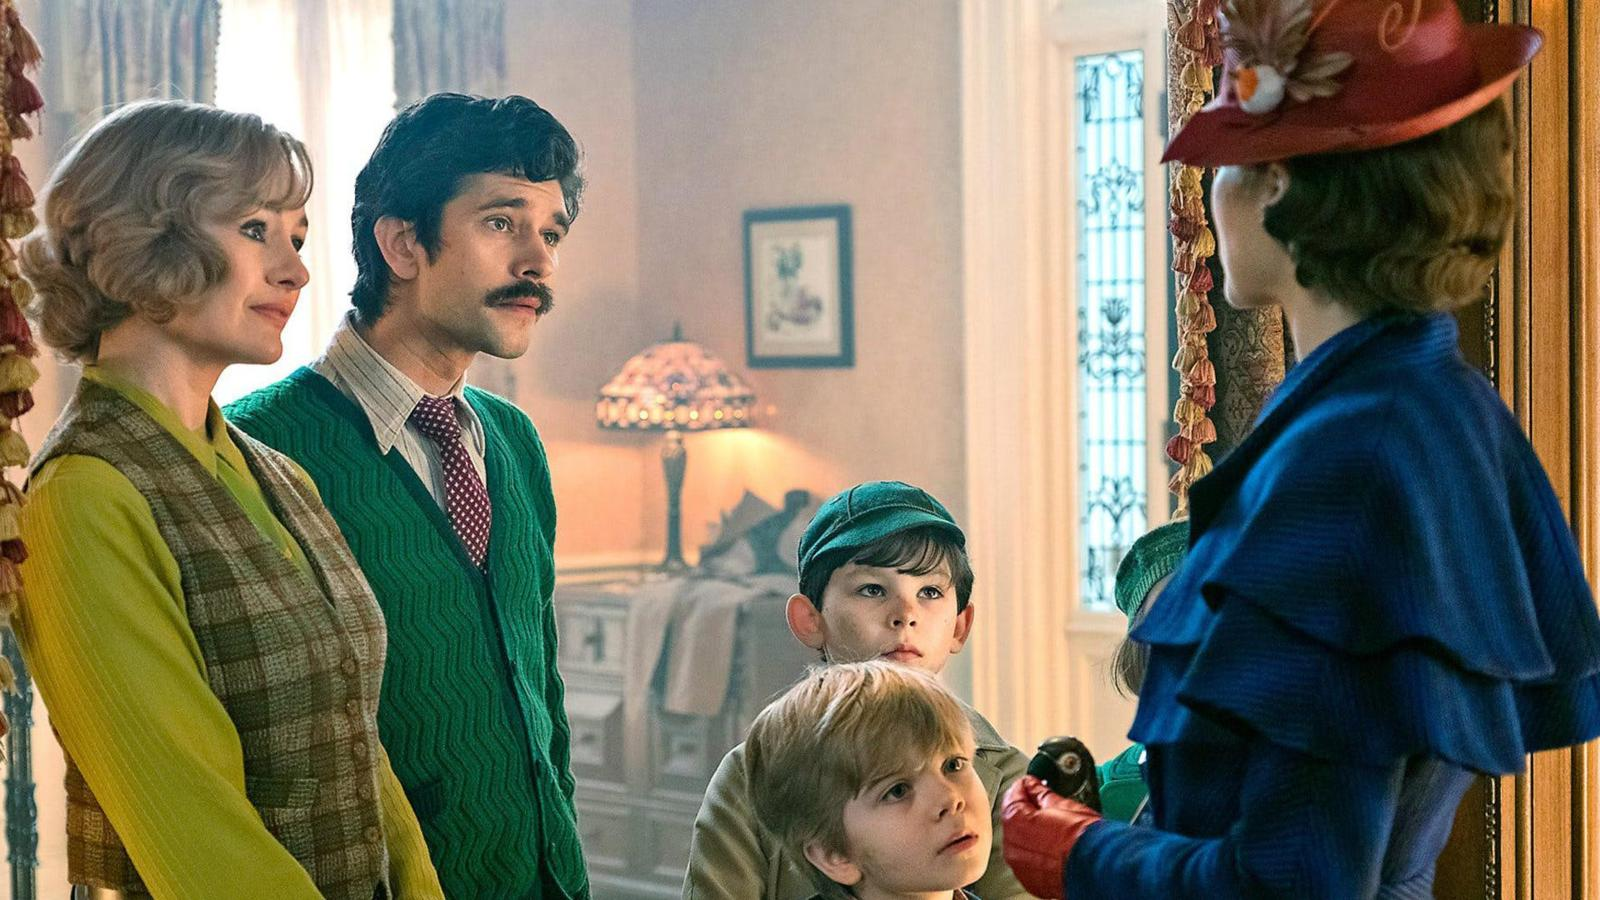 Emily Mortimer, Ben Whishaw, Joel Dawson, Nathanael Saleh, Pixie Davies, and Emily Blunt in MARY POPPINS RETURNS (2018)